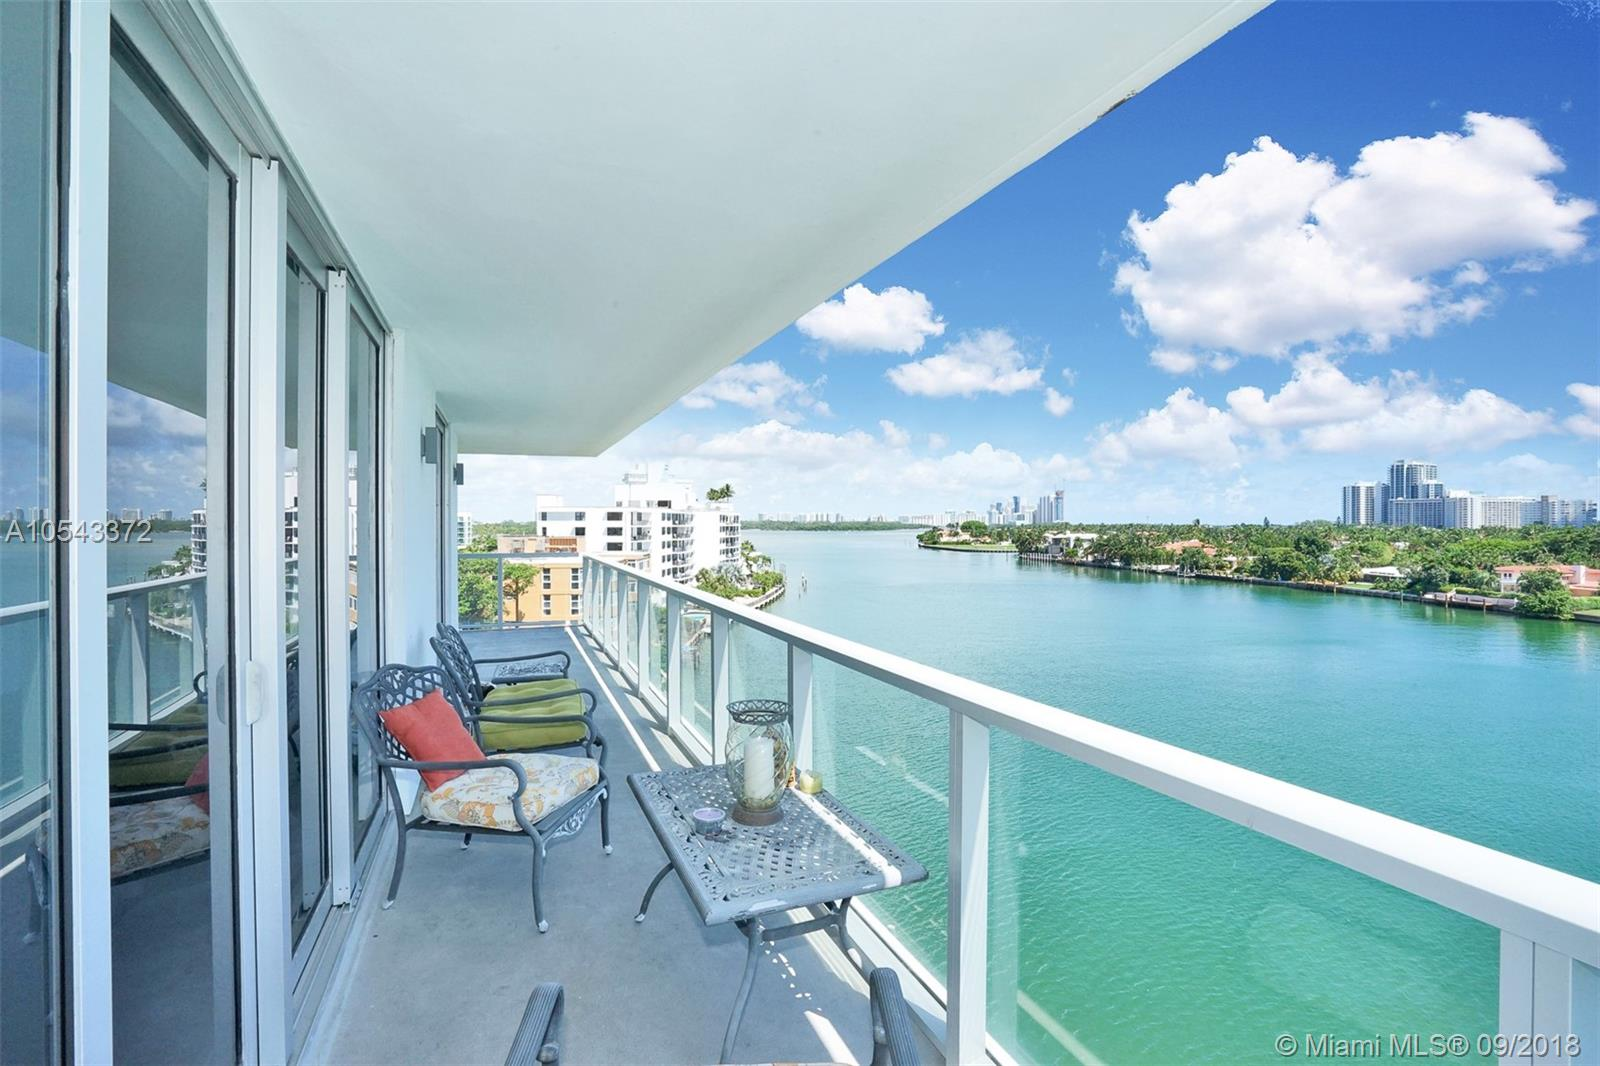 9901 E Bay Harbor Dr #701 For Sale A10543372, FL